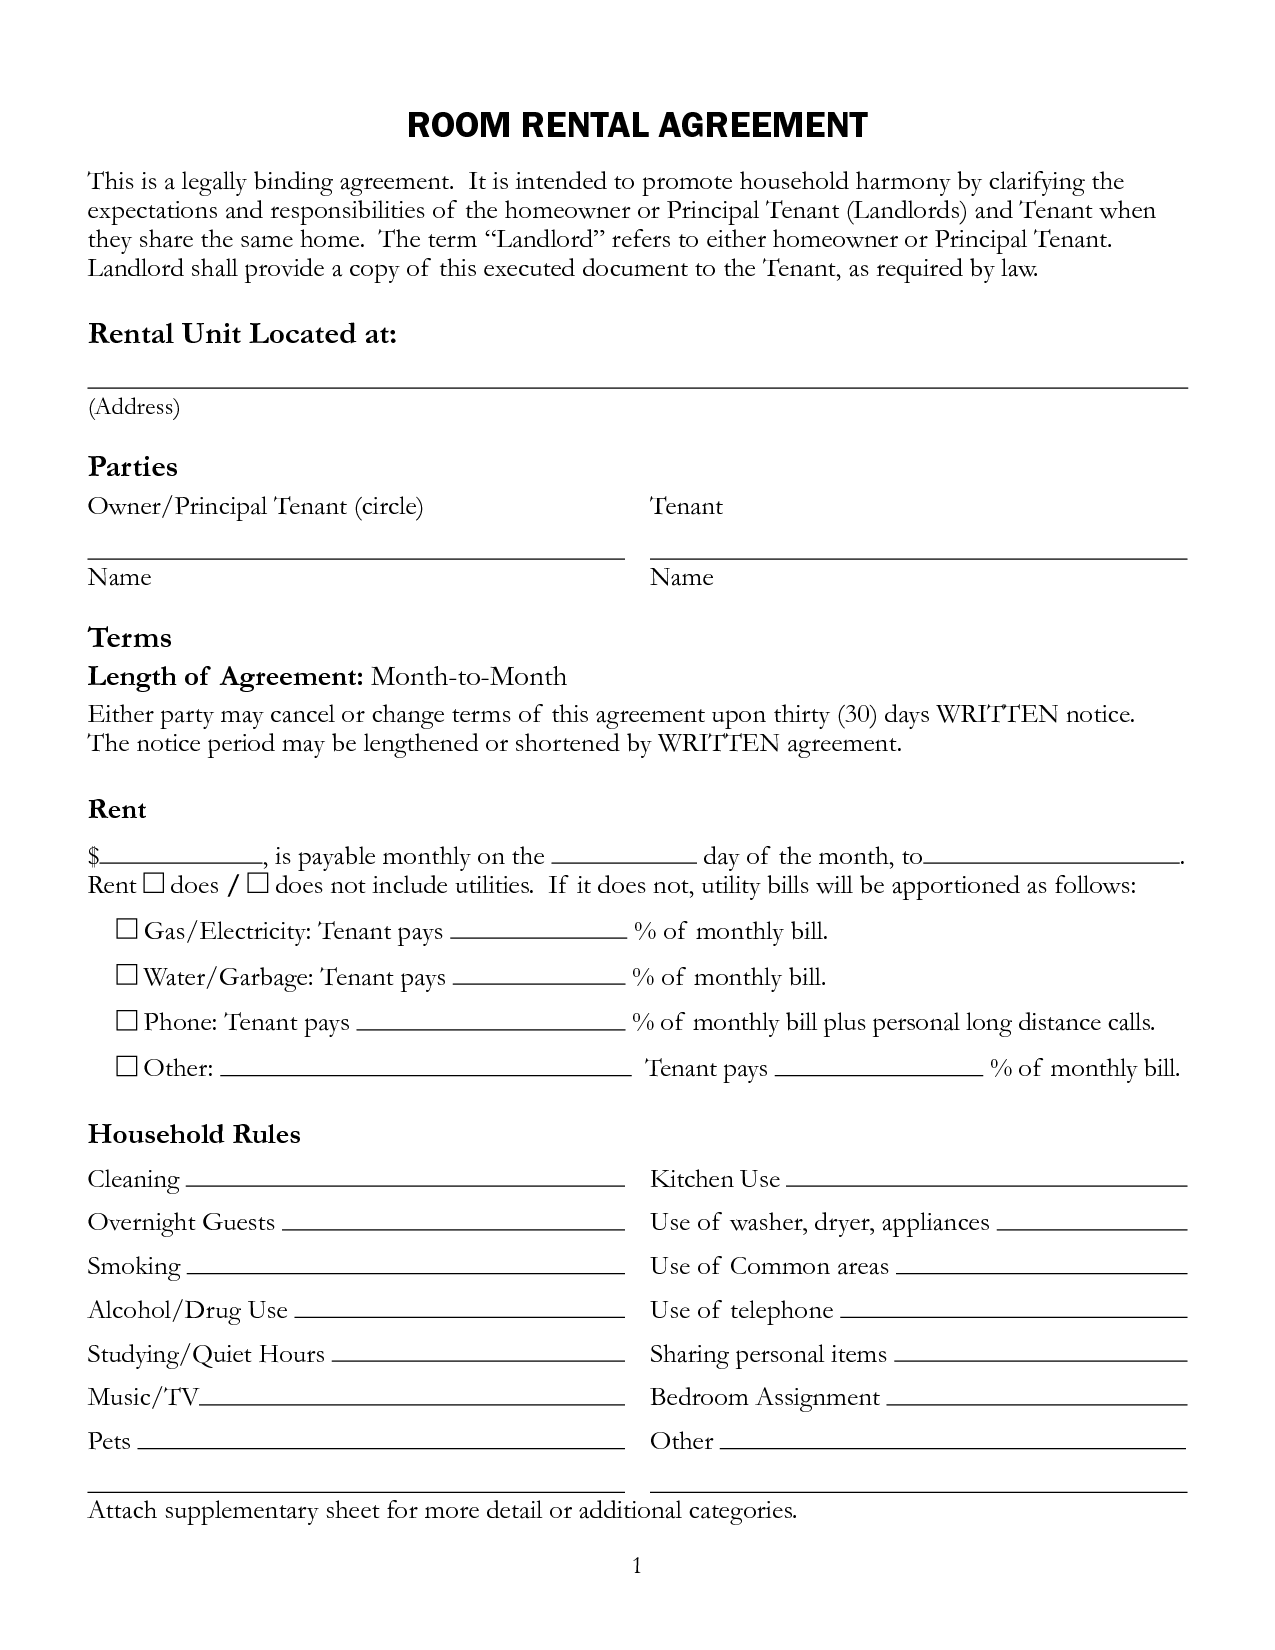 lease agreement samples – Free Property Lease Agreement